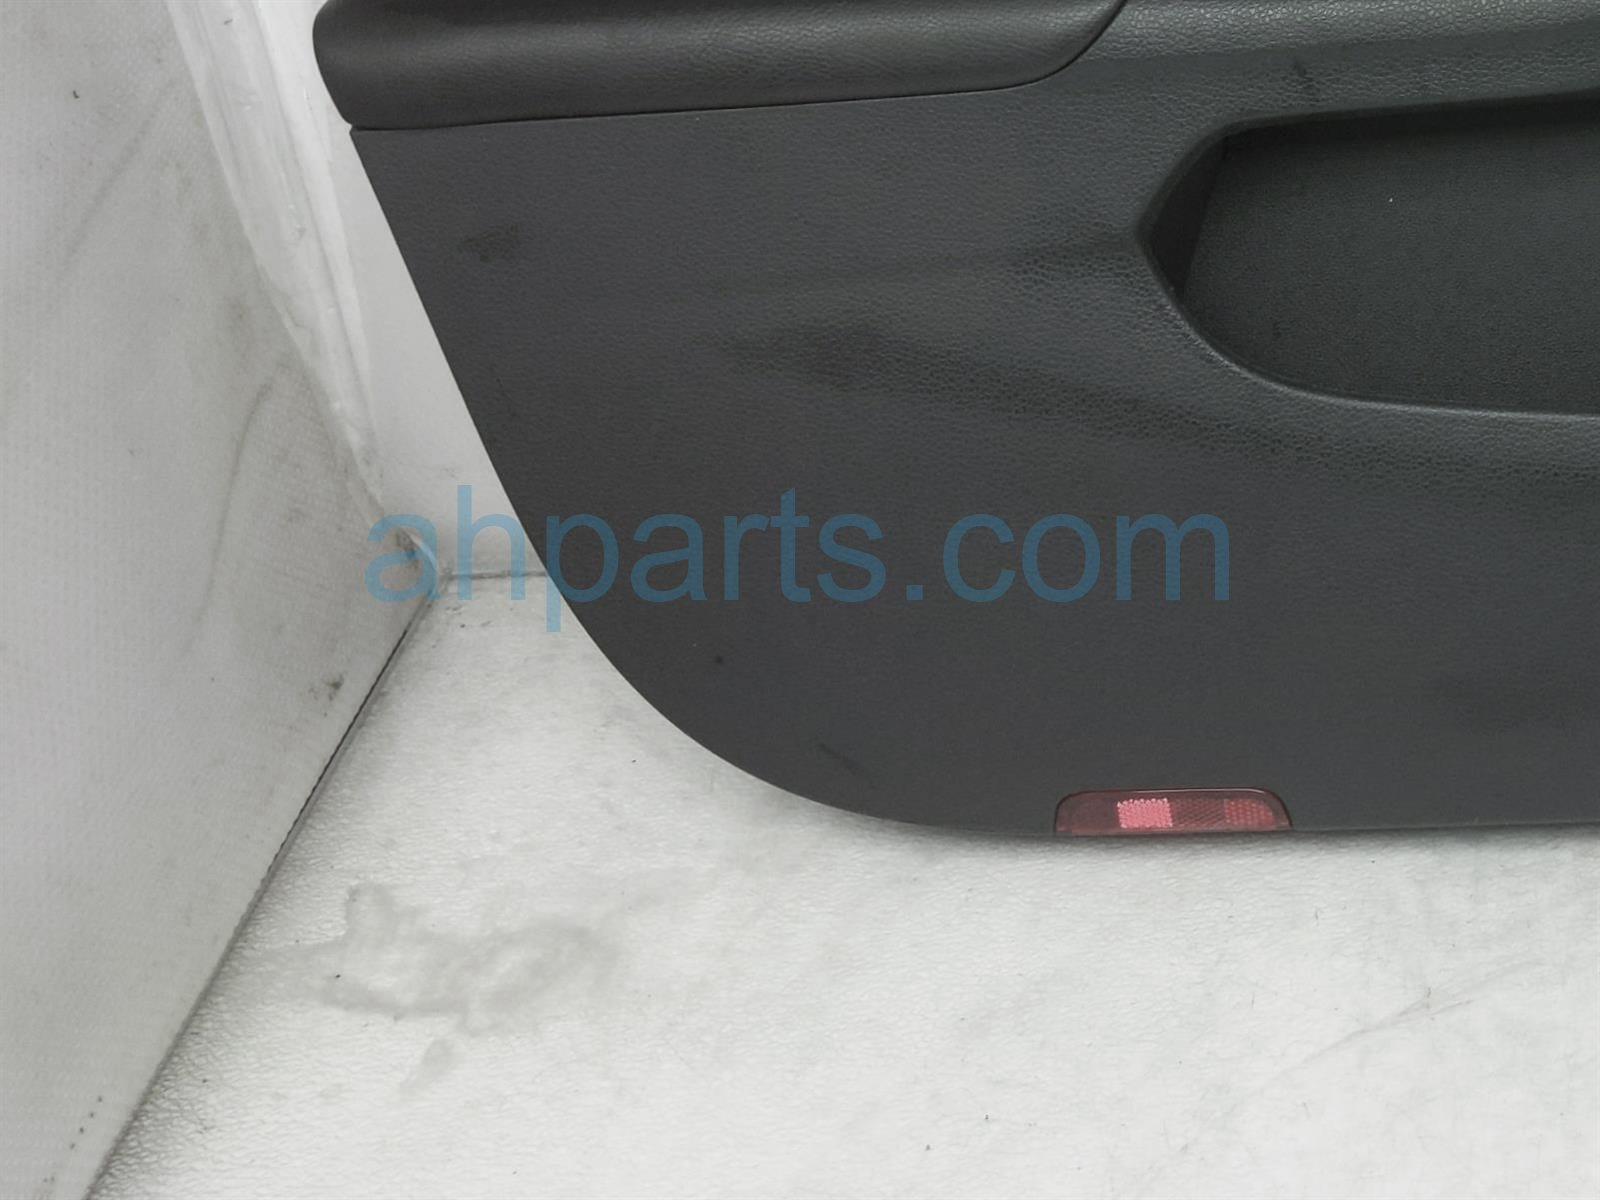 2018 Volkswagen Jetta Trim / Liner Front Driver Interior Door Panel   Black   5C7 867 011 S AHA Replacement